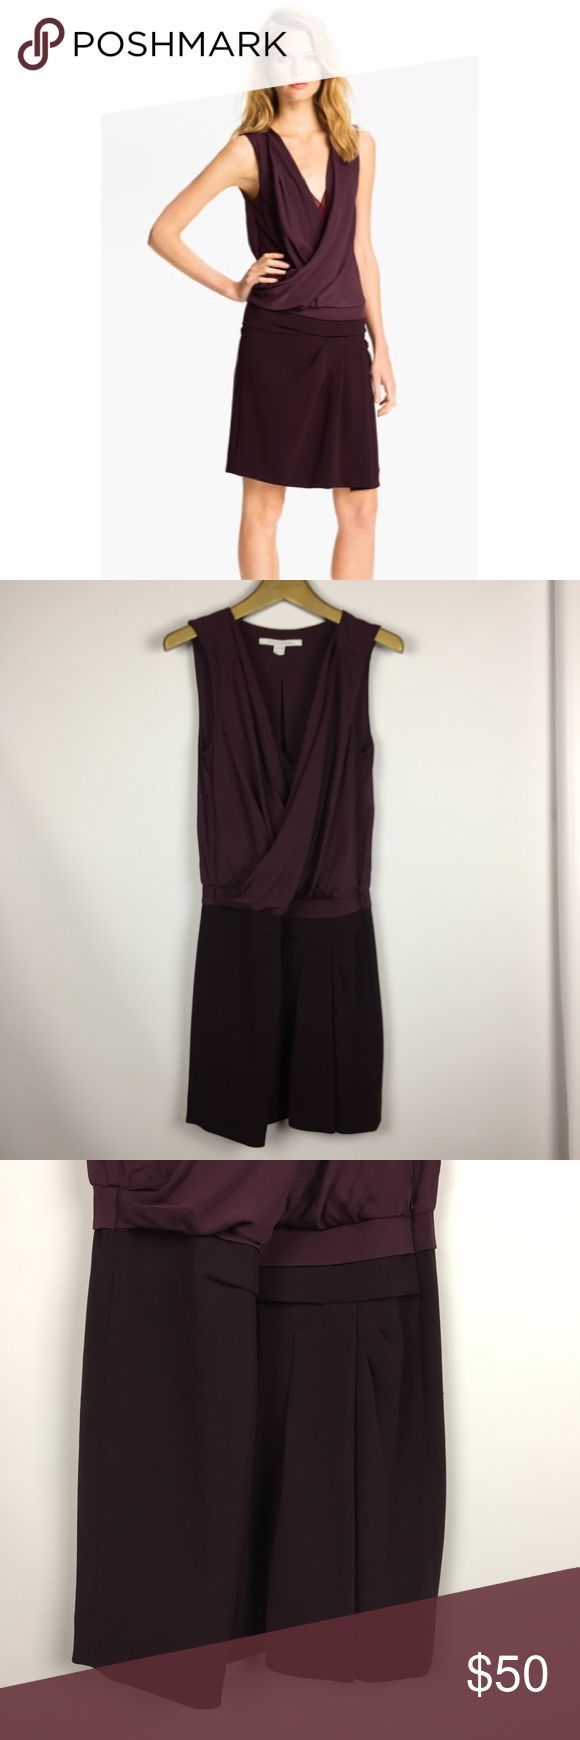 """DVF Daran Silk Faux Wrap Cocktail Dress \\ Sz 6 DVF Diane Von Furstenberg """"Daran"""" dress Size 6 Plum color Silk upper, triacetate blend skirt Gently preowned with light signs of wear - a couple minor pulls  15.5 inches across waist 20 inches across hips (slightly loose fit) about 38 inches in length Diane Von Furstenberg Dresses"""